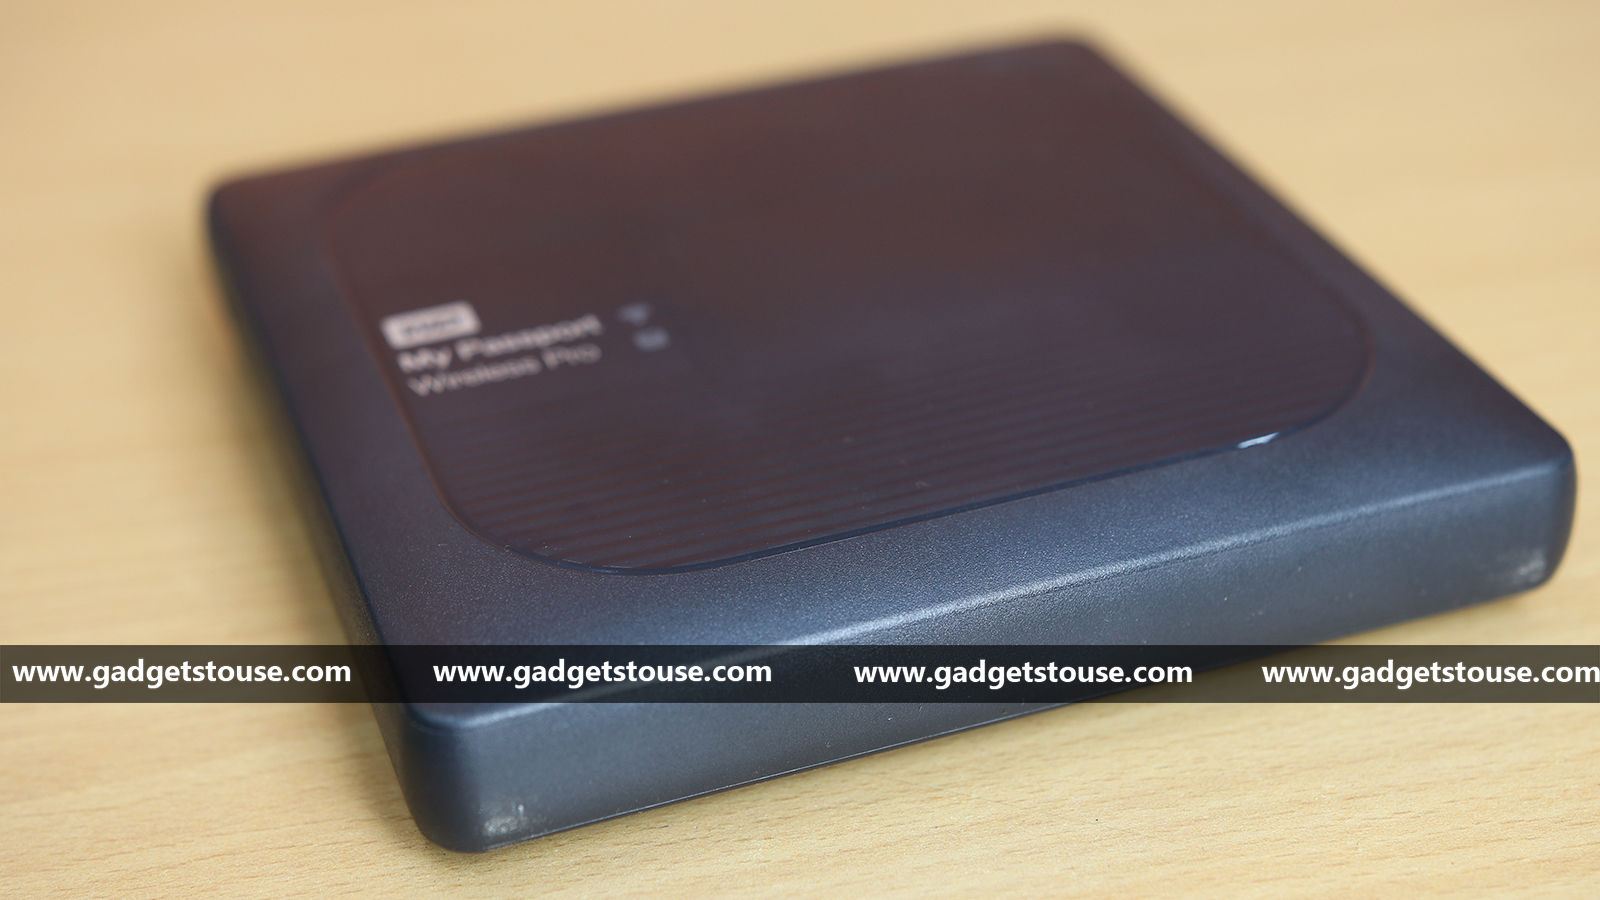 WD My Passport Wireless Pro Review